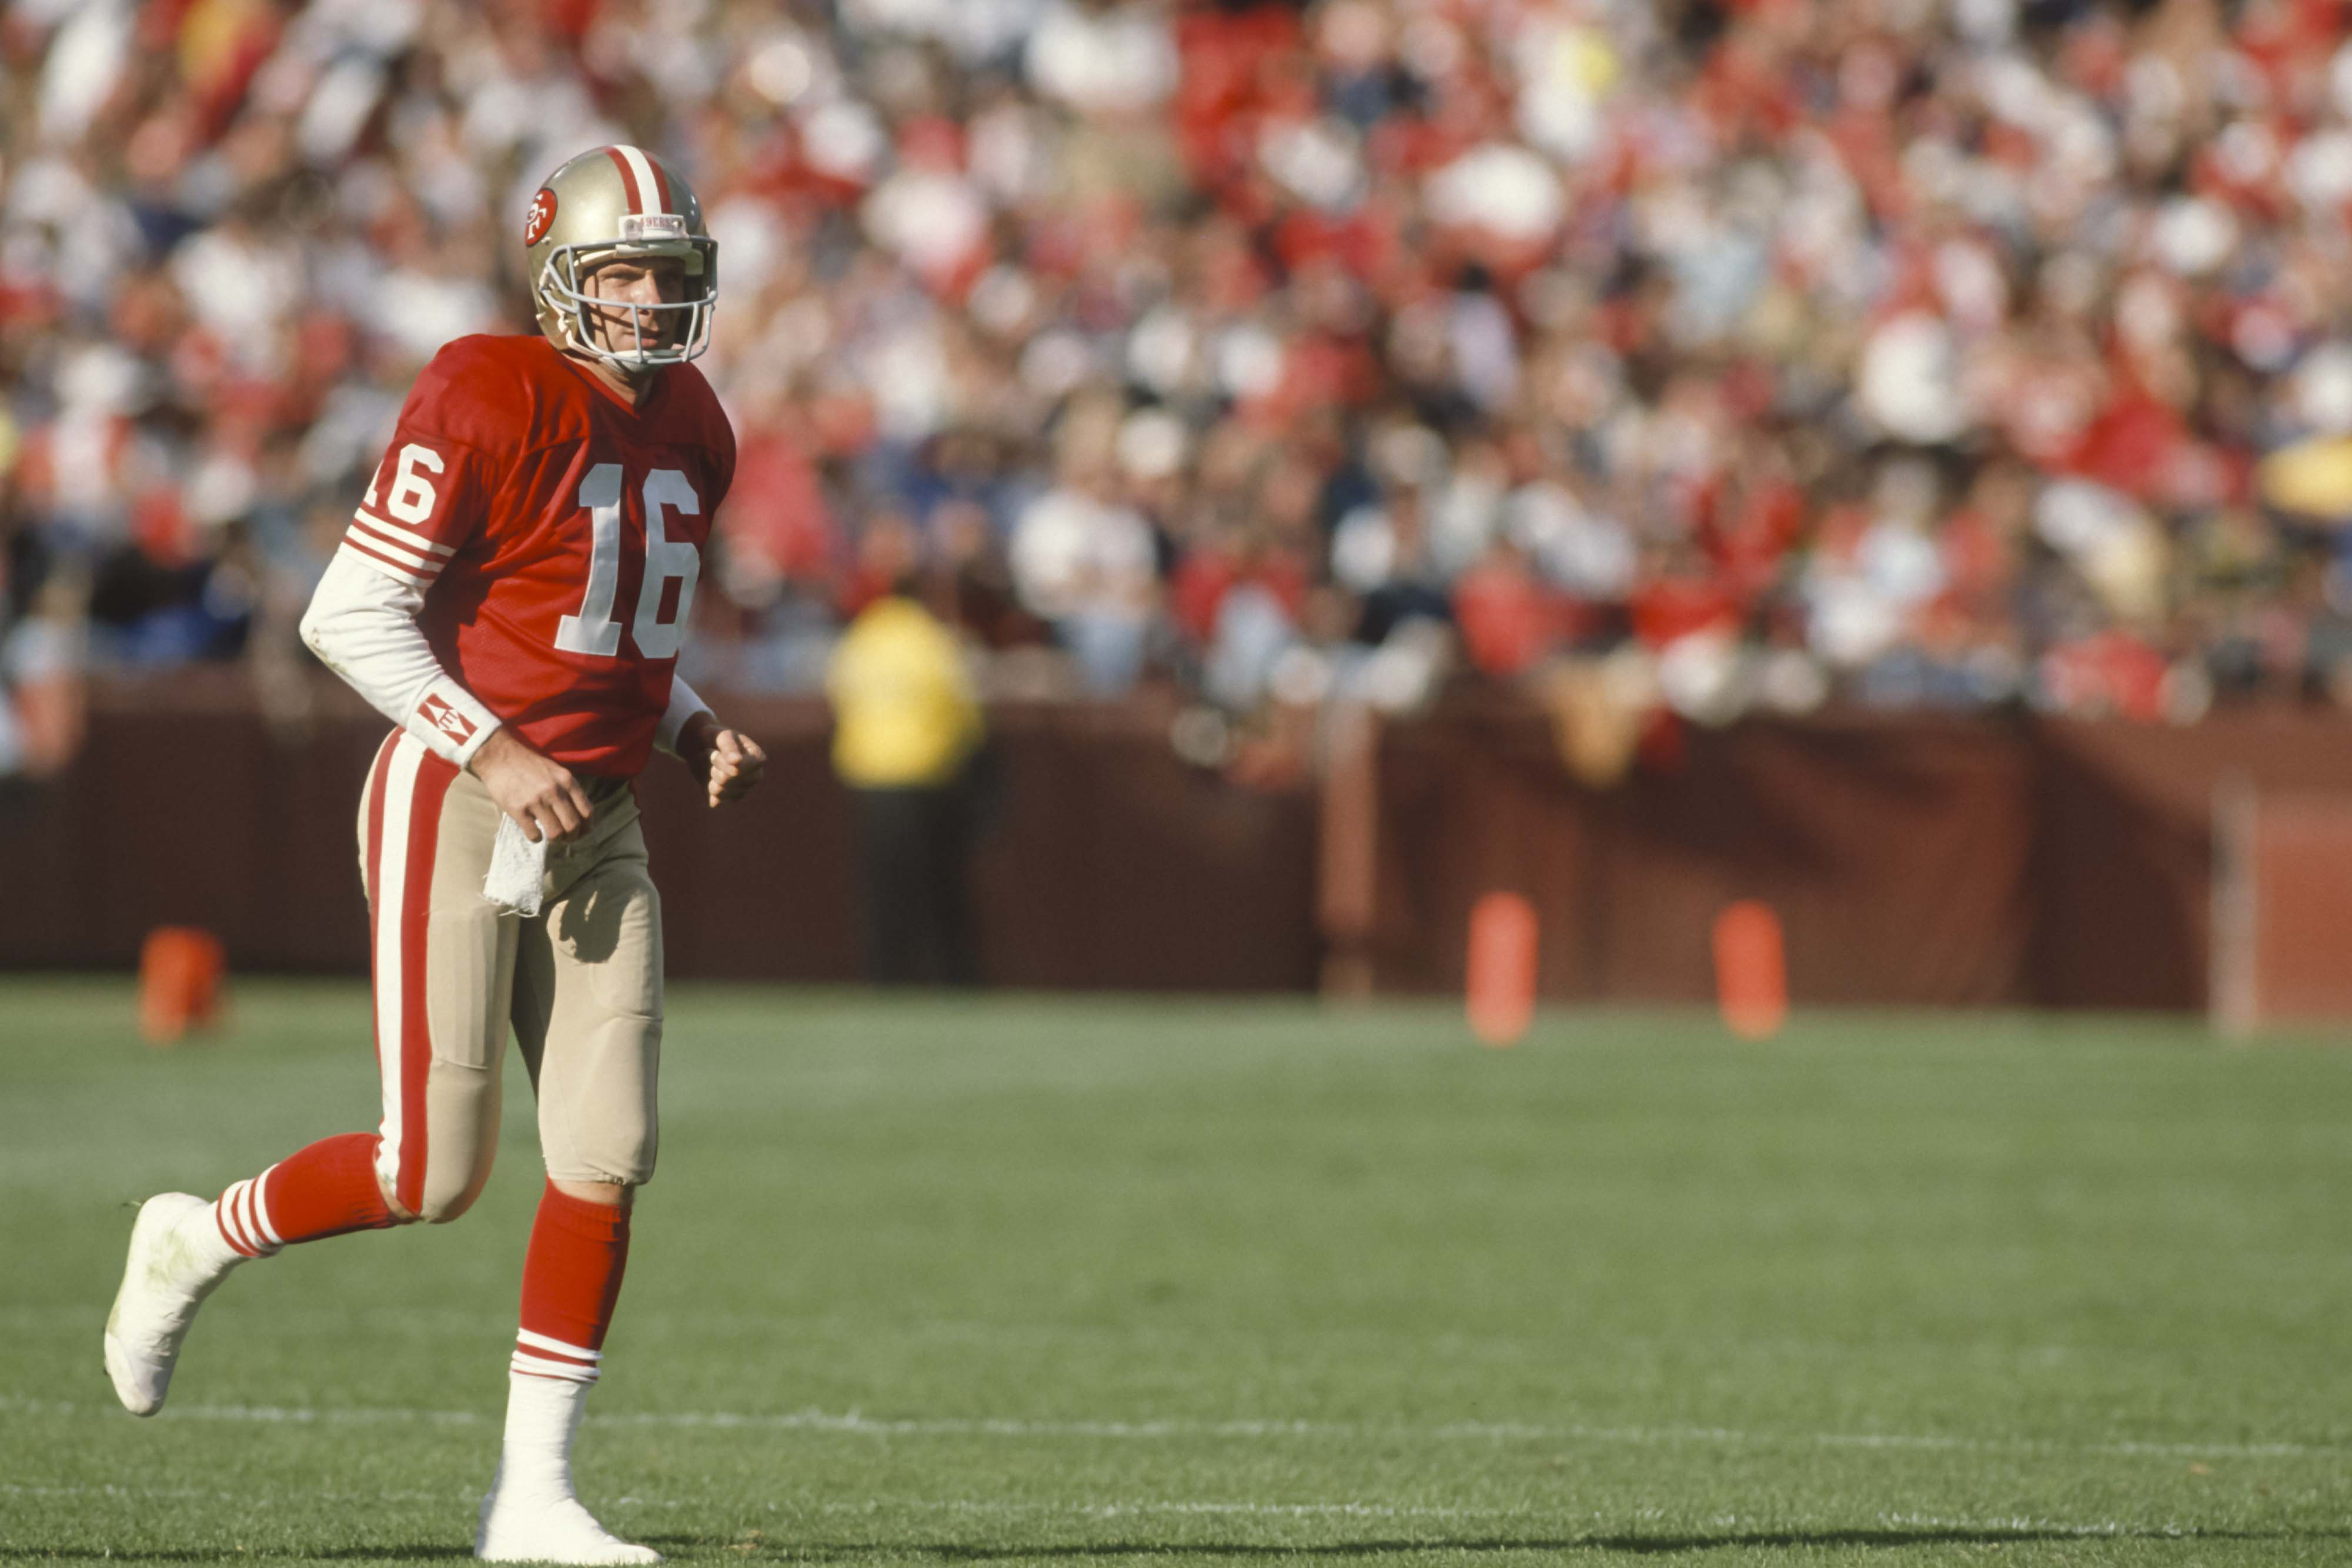 Joe Montana was traded from the 49ers to the Chiefs in 1993.